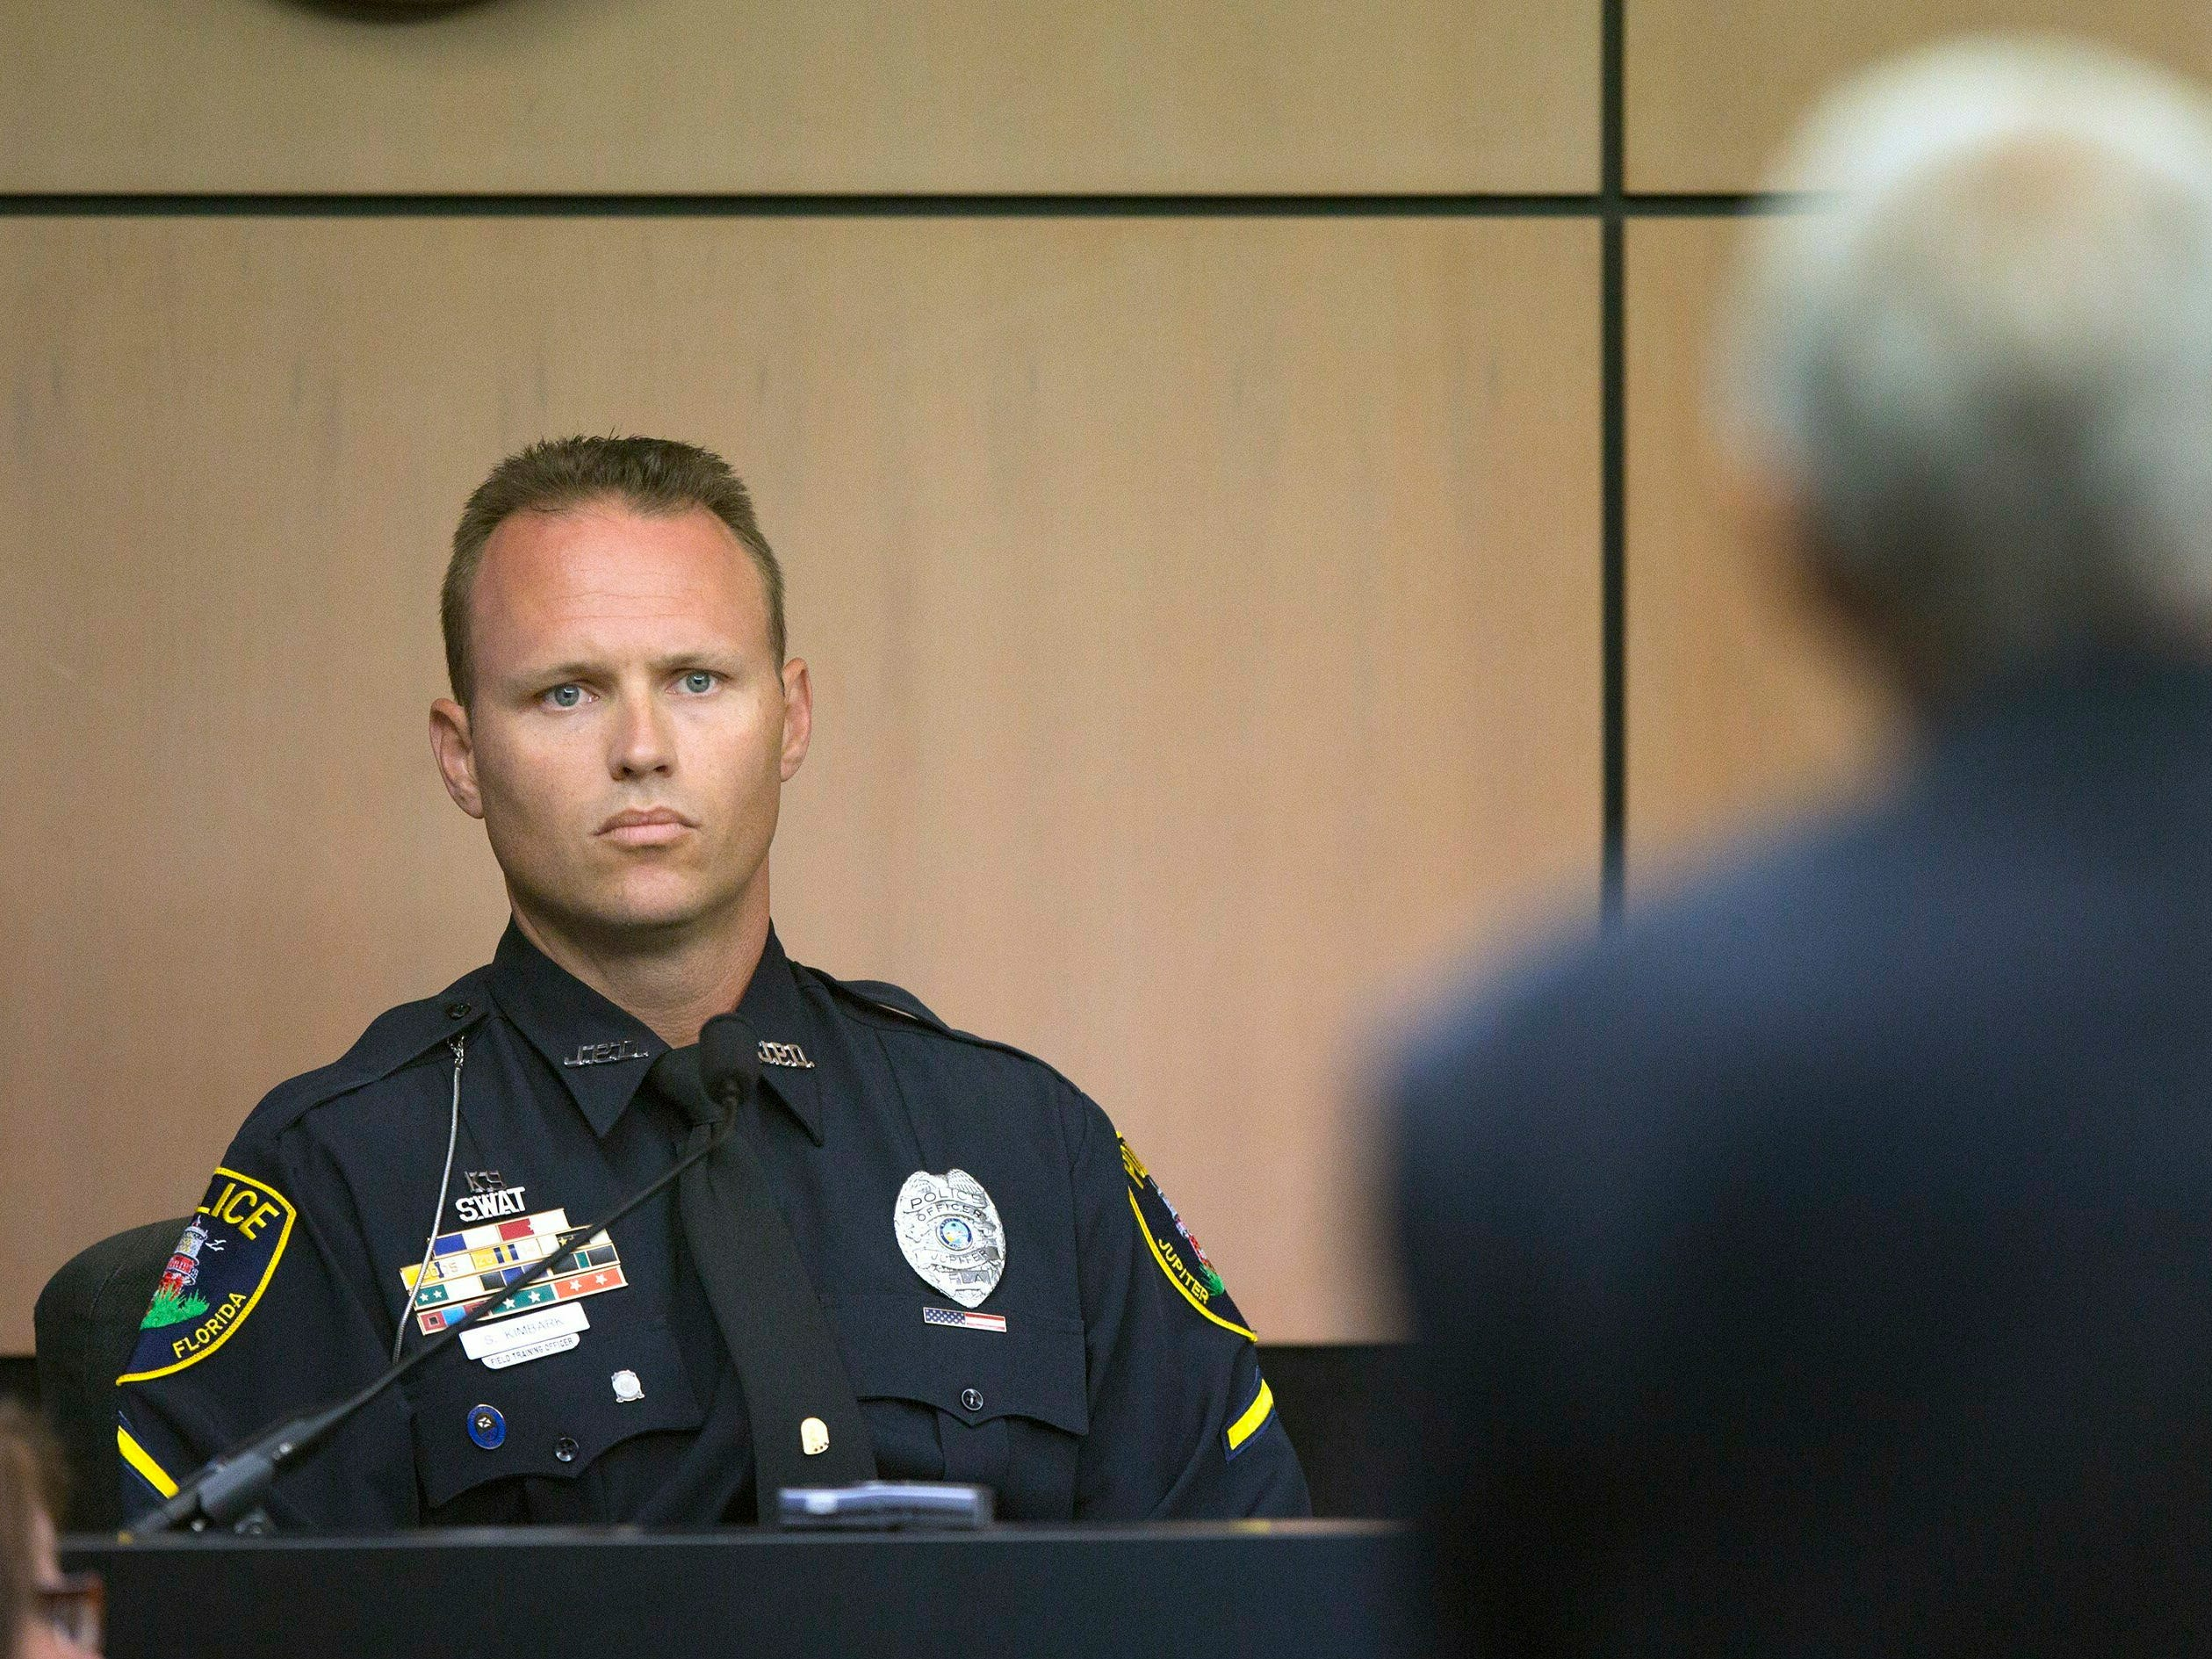 Jupiter police officer Scott Kimbark is questioned as he testifies during a motion hearing in New England Patriots owner Robert Kraft prostitution solicitation case, Wednesday, May 1, 2019, in West Palm Beach. Kimbark stopped the car containing Kraft. Kraft's attorneys argue that undercover surveillance videos allegedly showing their client paying for sex at a Jupiter day spa should be ruled inadmissible and the evidence thrown out.